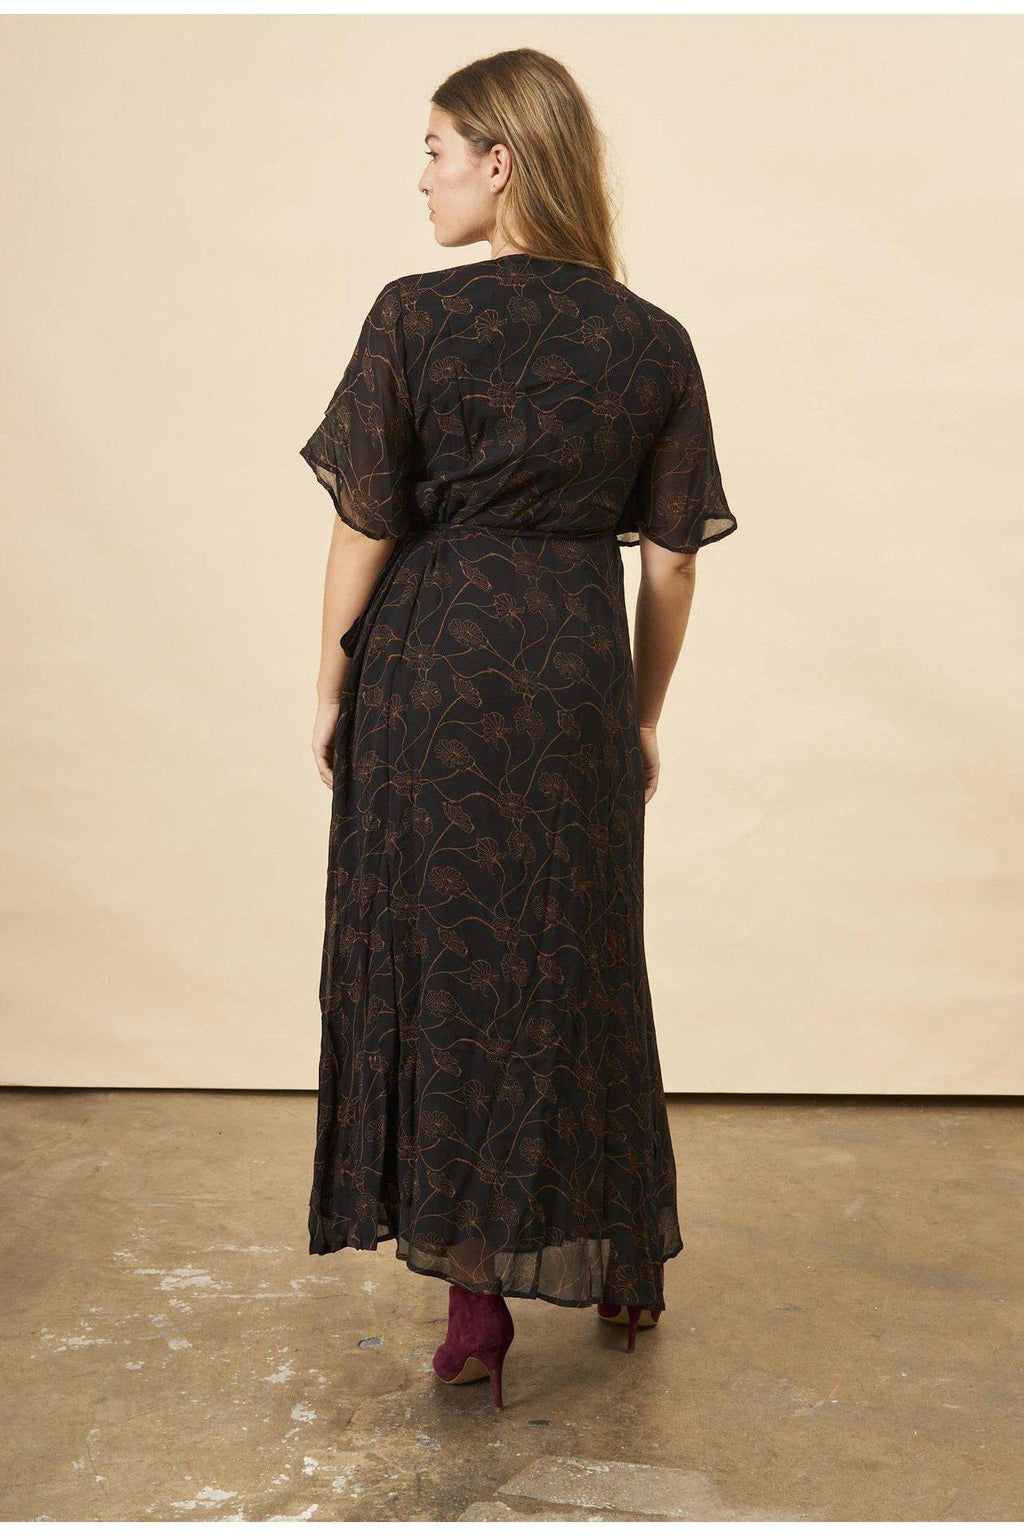 Poppy Flower Butterfly Sleeve Maxi Dress in Black + Copper